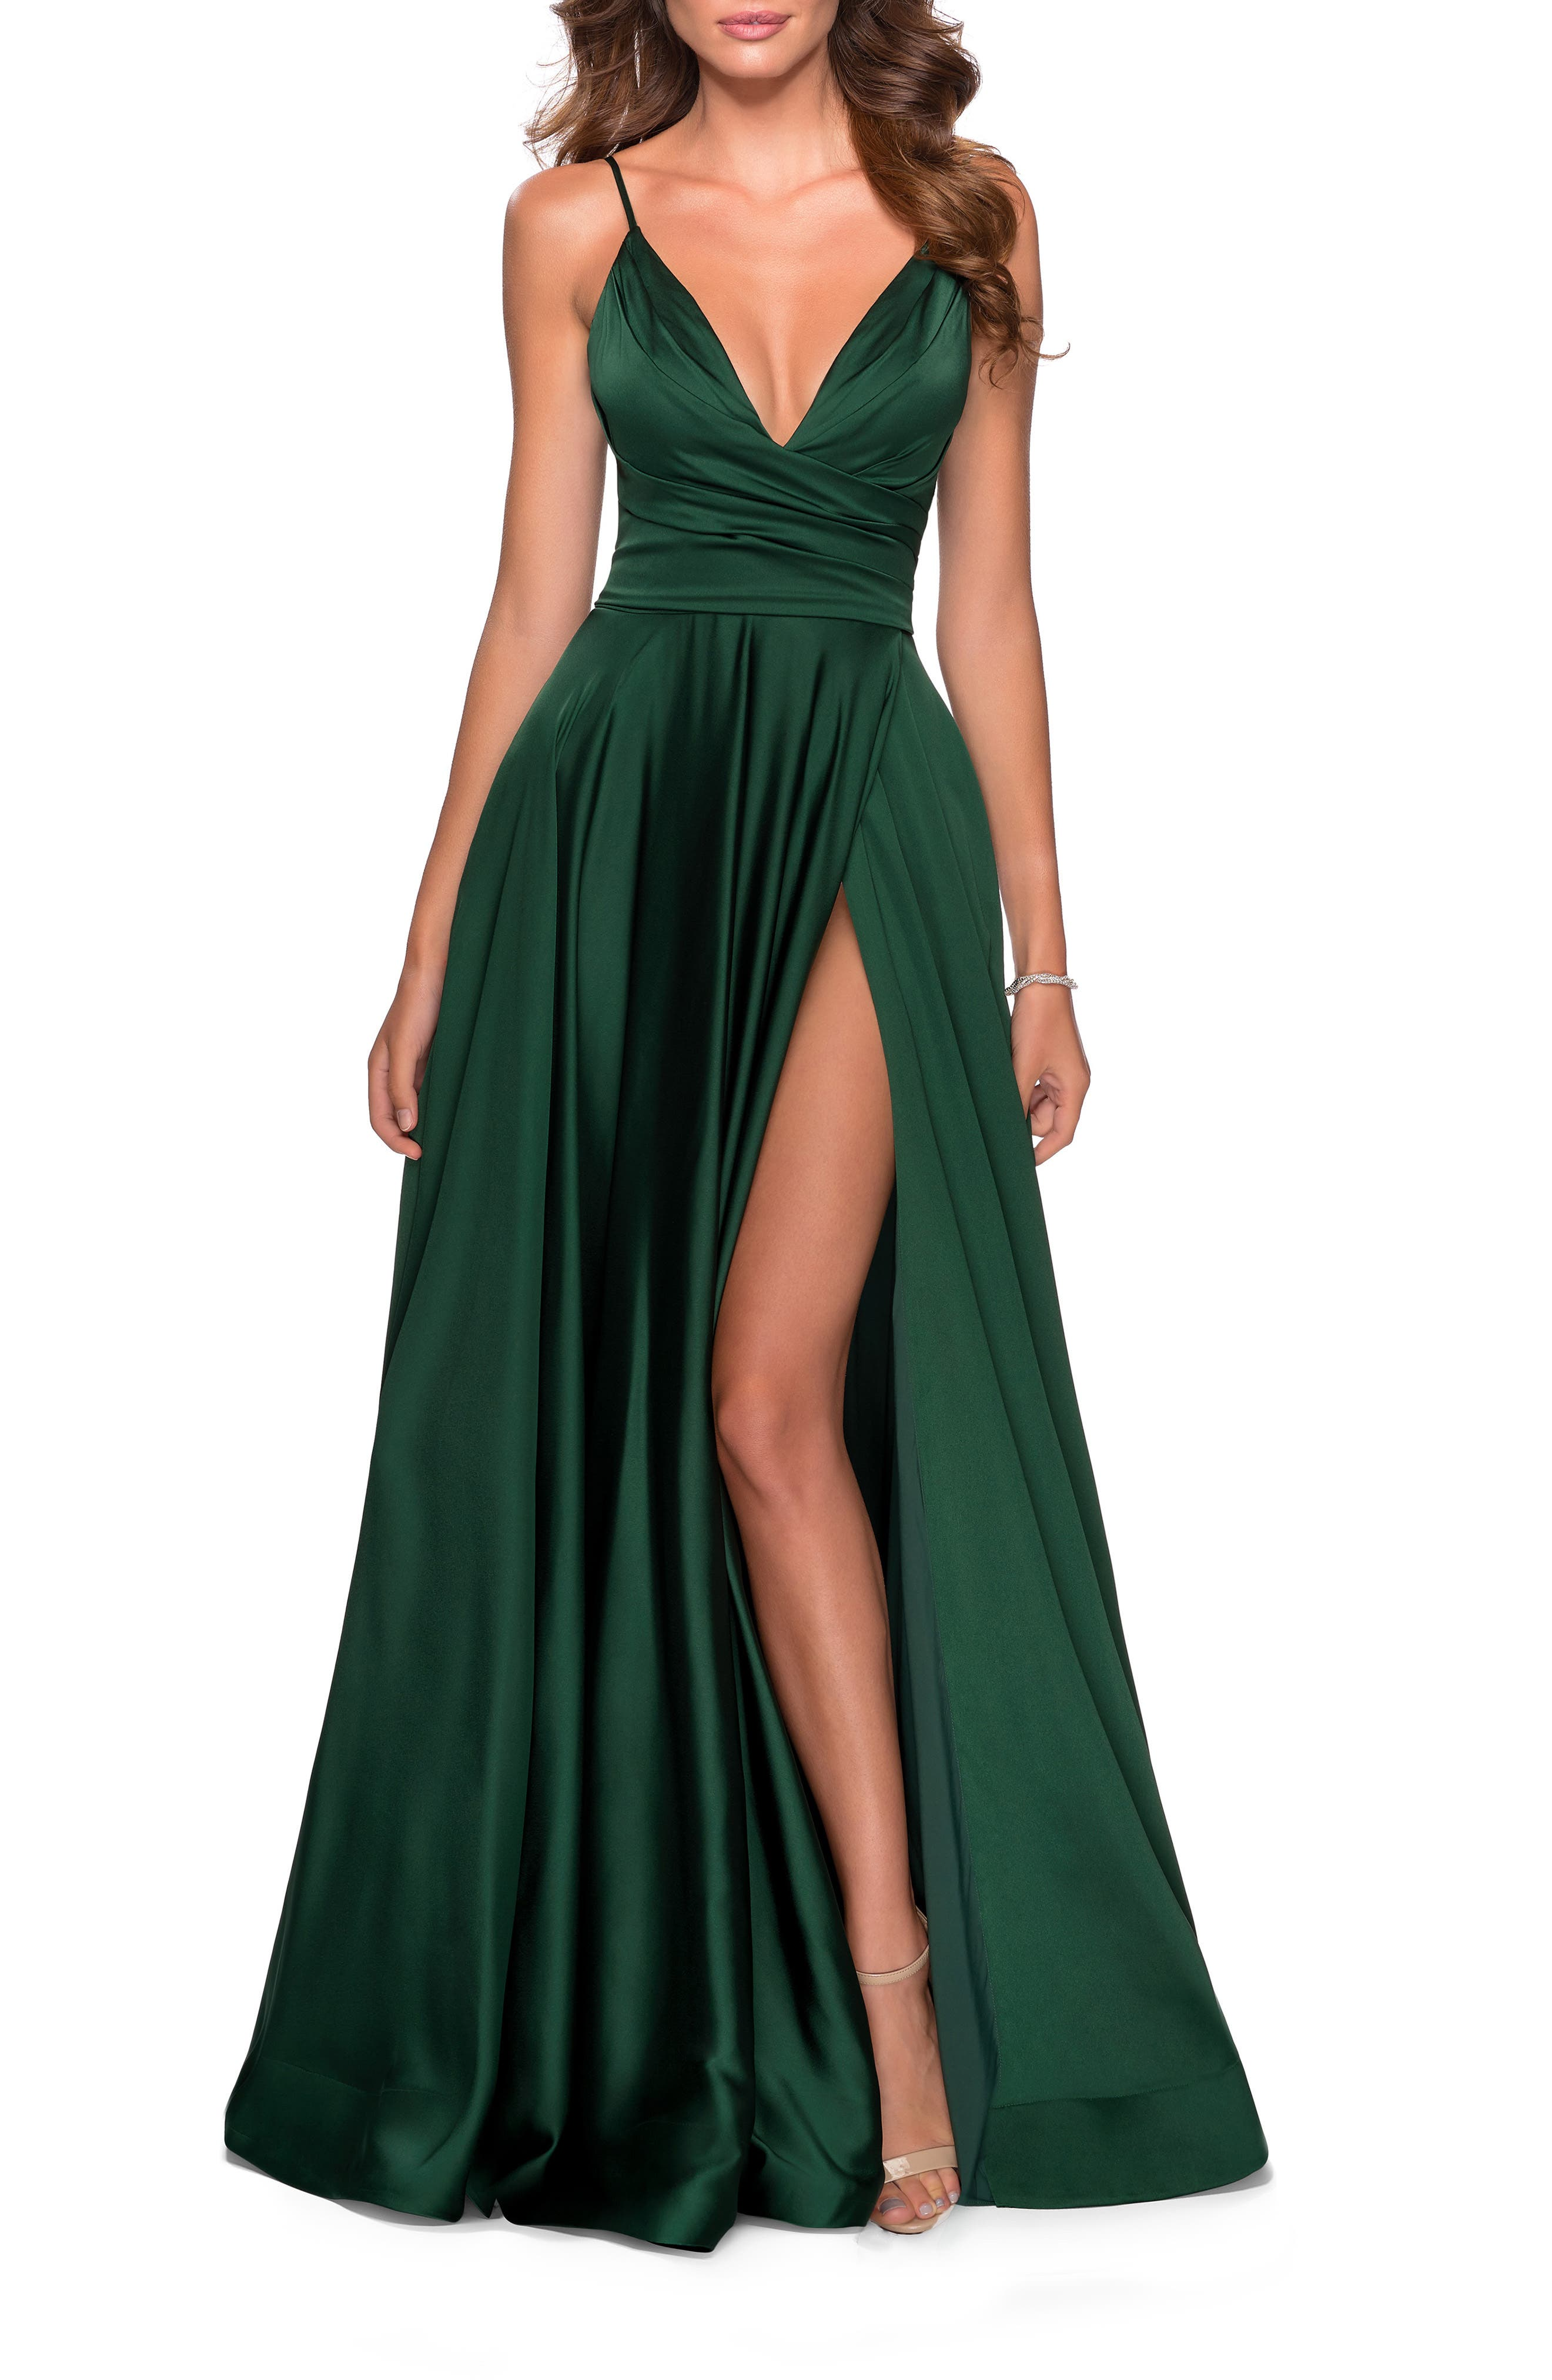 Liquid shimmer pours down this satin ballgown cut with no small measure of daring via a plunging neckline, an open back and an unexpected front slit. Style Name: La Femme Strappy Back Satin Ballgown. Style Number: 6024981. Available in stores.